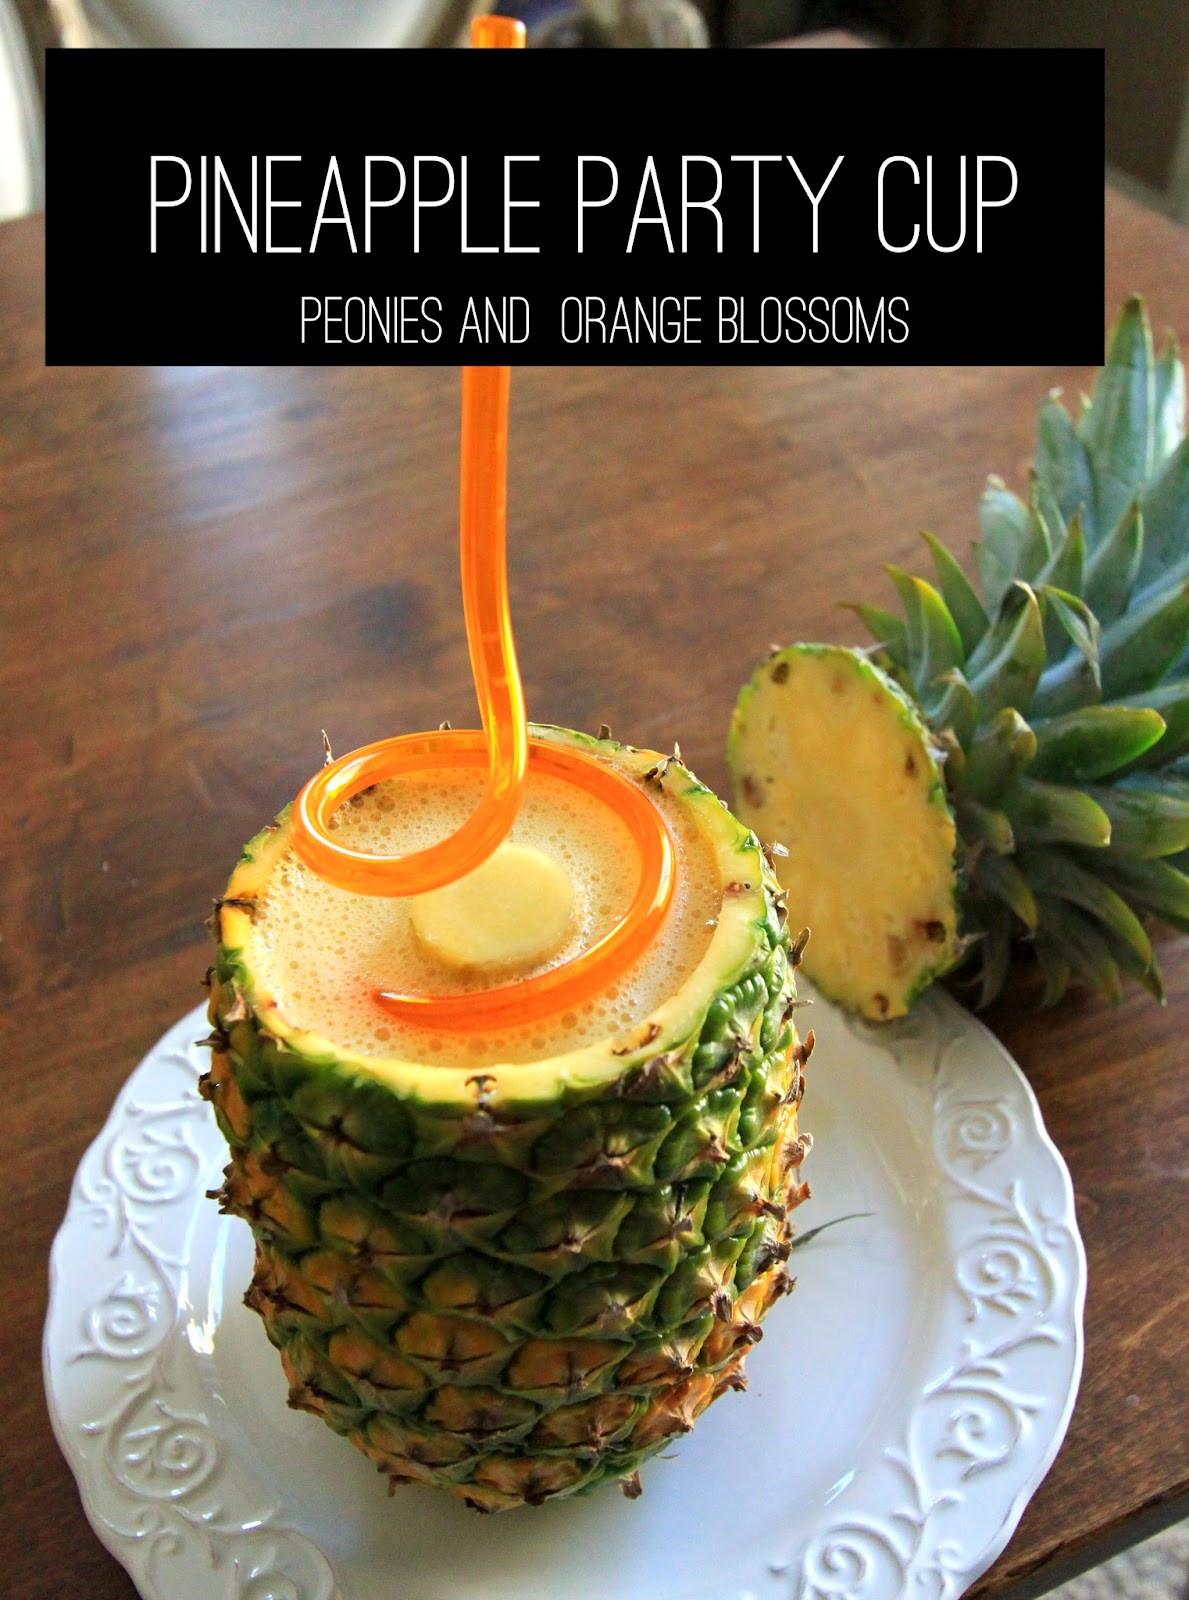 Dole whip Recipe with Pineapple Cup